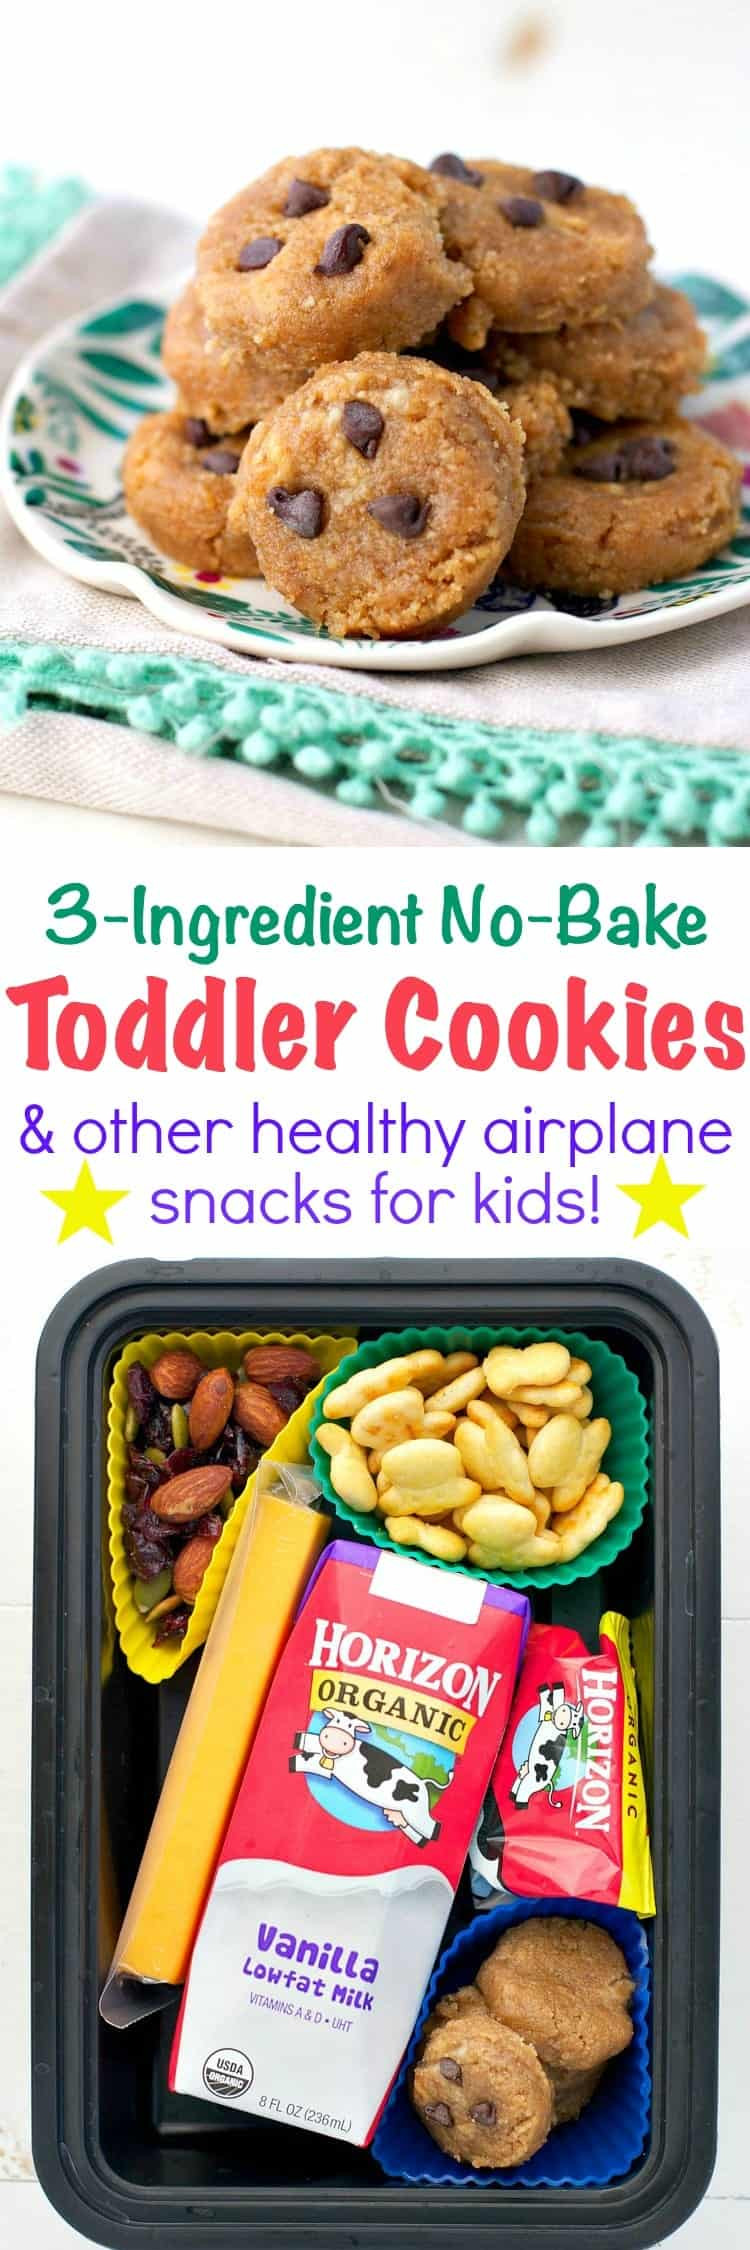 Healthy Plane Snacks  3 Ingre nt No Bake Toddler Cookies Airplane Snacks for